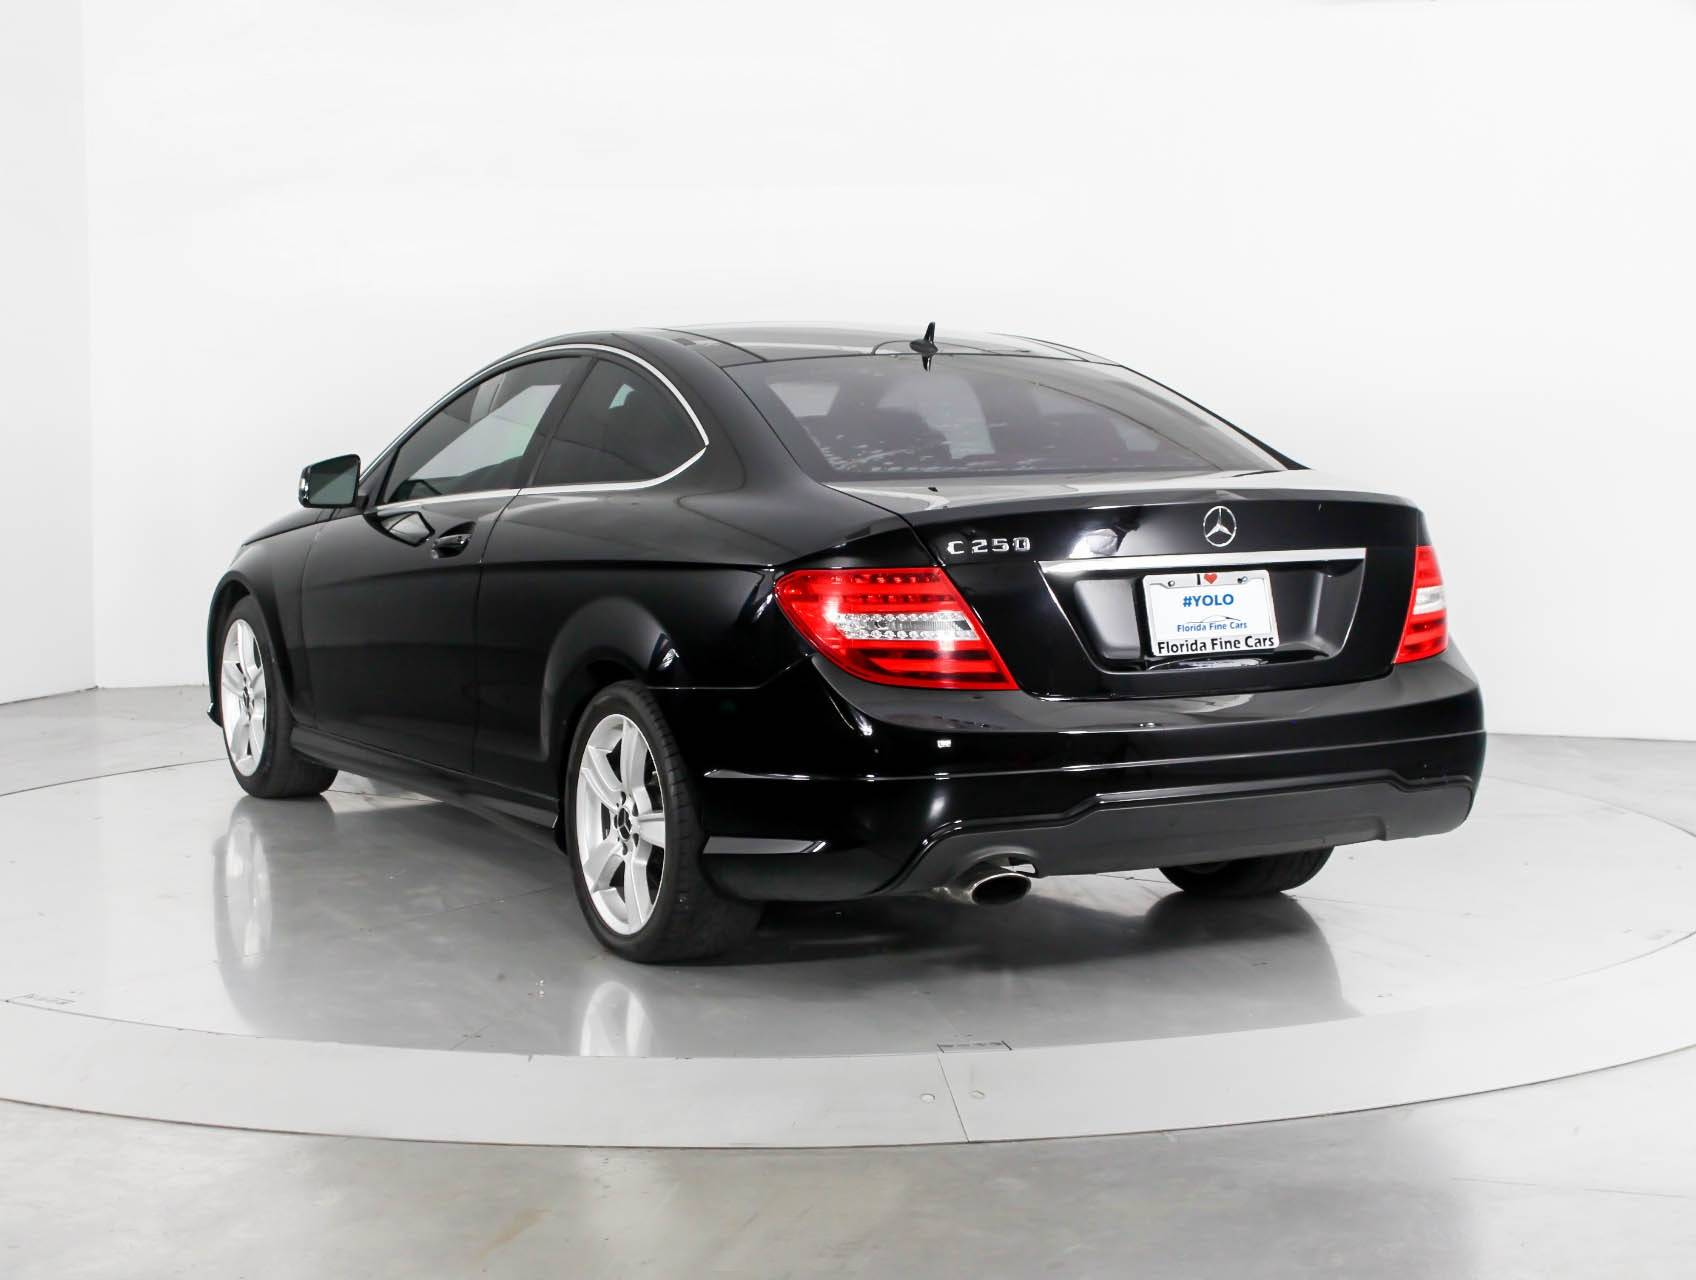 florida carsforsale c fine mercedes benz miami in sale class cars for fl used coupe stock